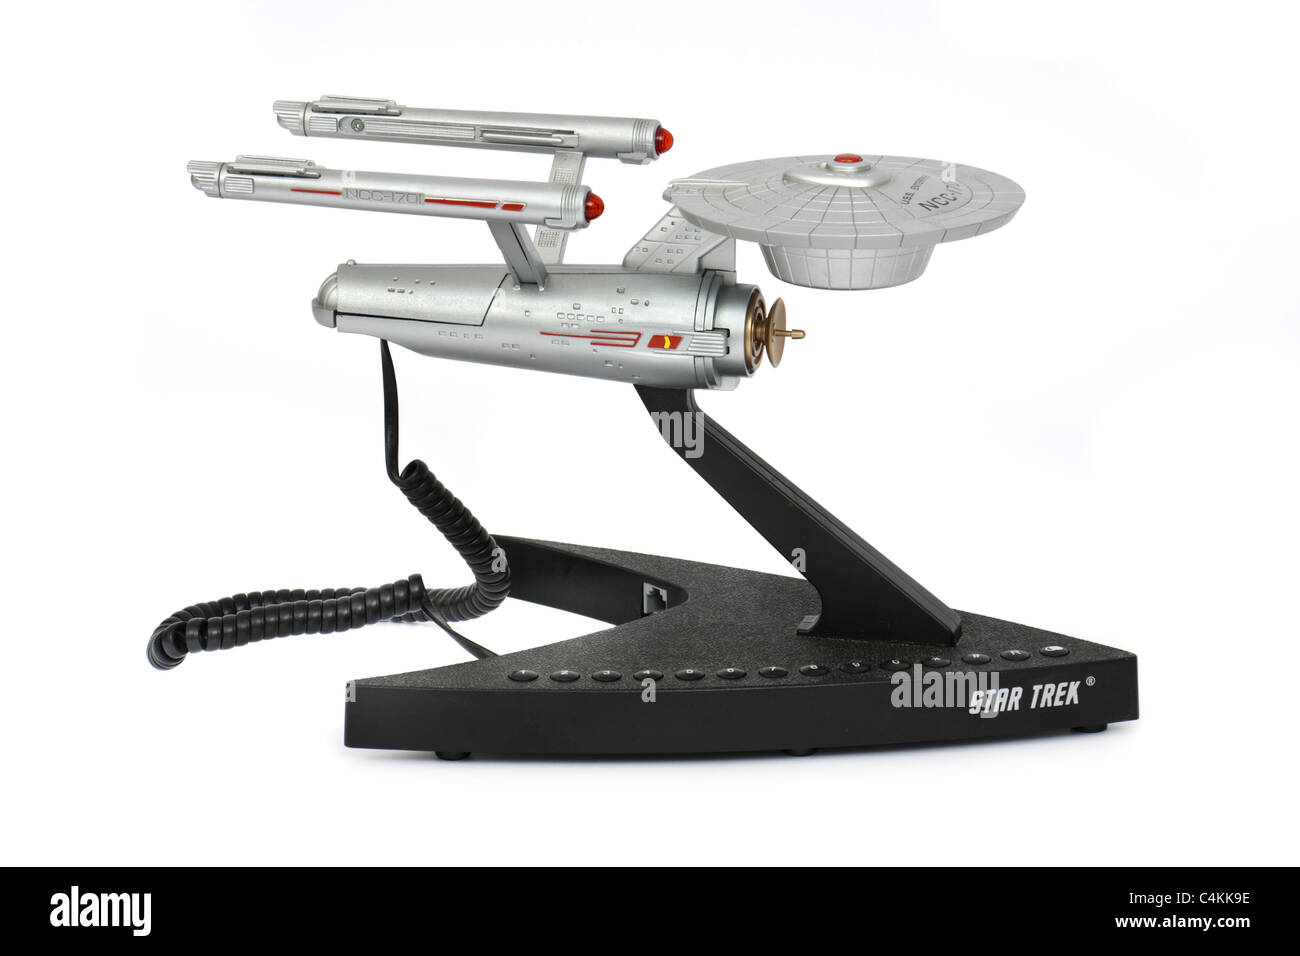 Vintage Star Trek U.S.S. Enterprise NCC-1701 Starship novelty telephone - Stock Image